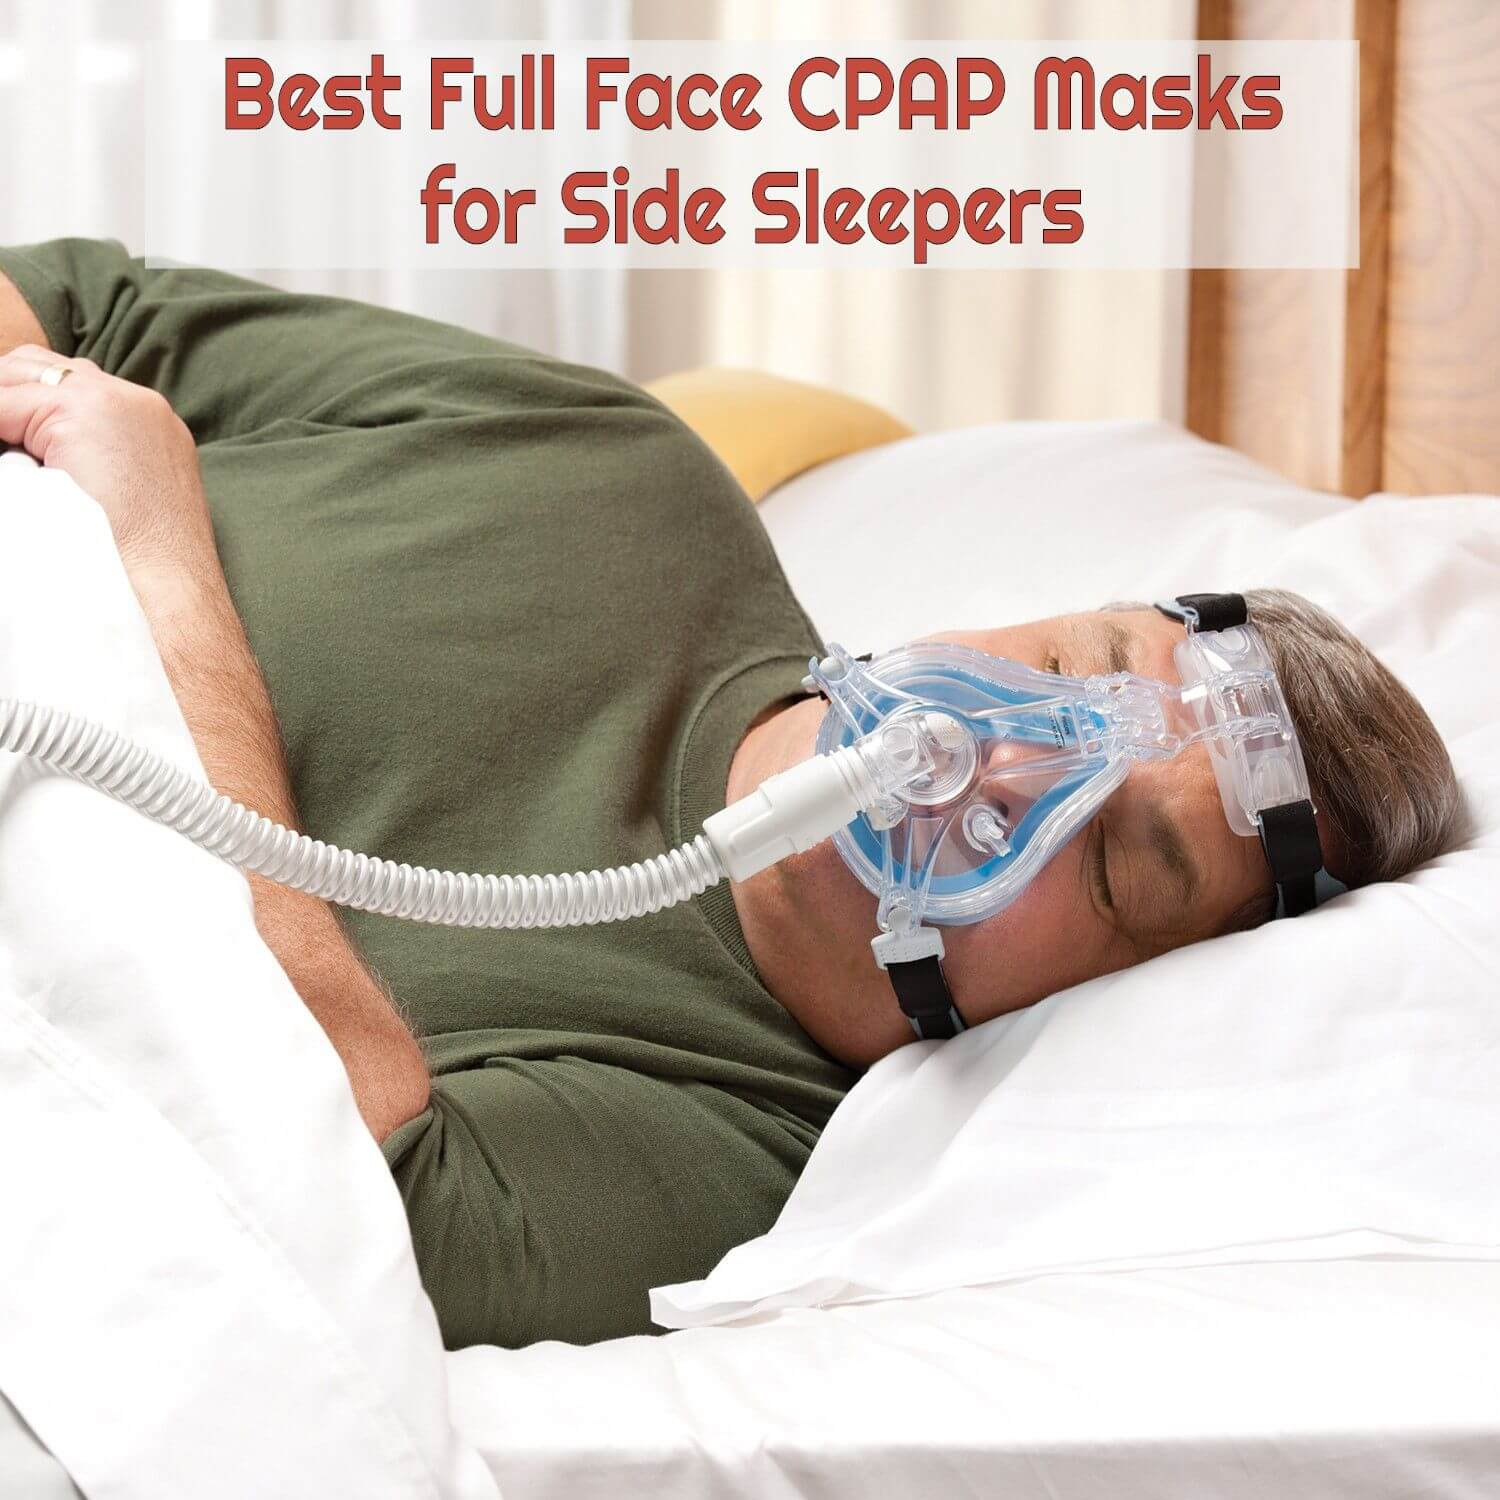 Best Full Face Cpap Masks For Side Sleepers